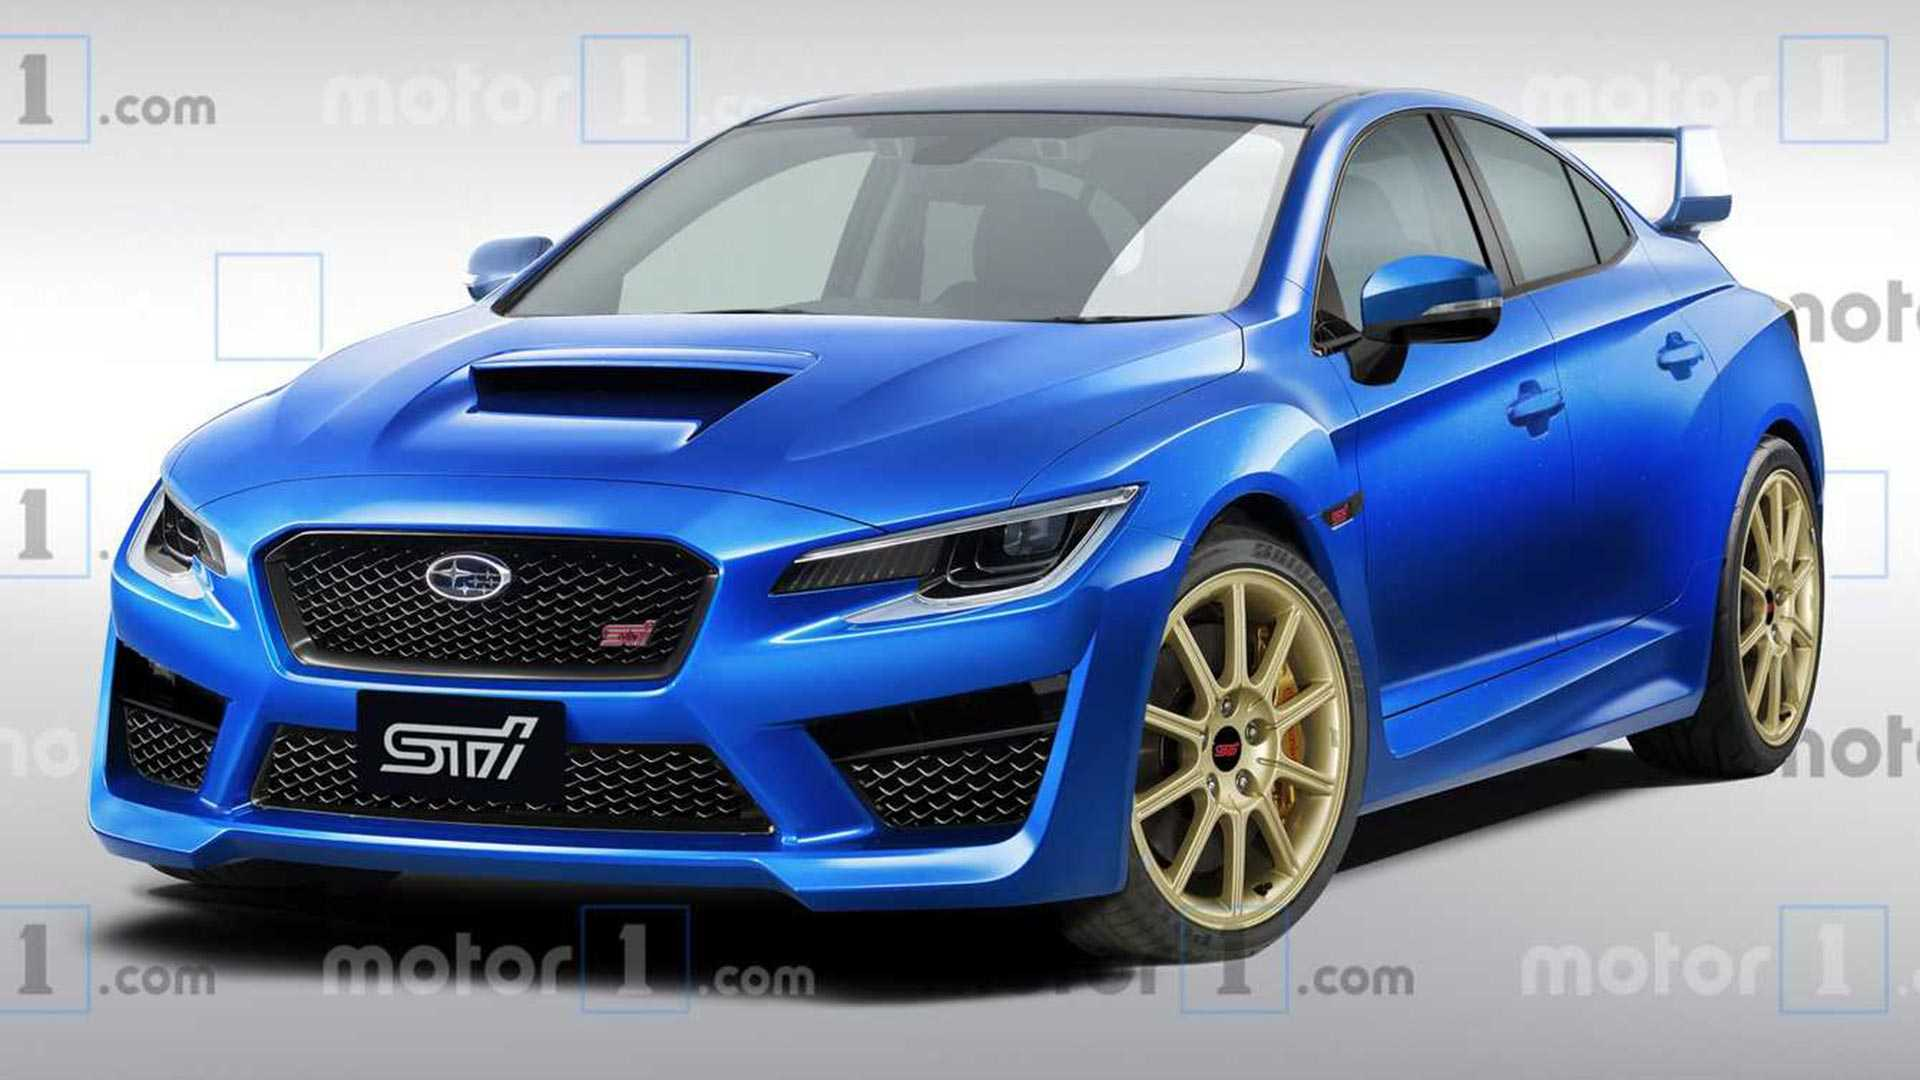 82 The Best 2020 Subaru Wrx Sti Release Date Redesign And Concept